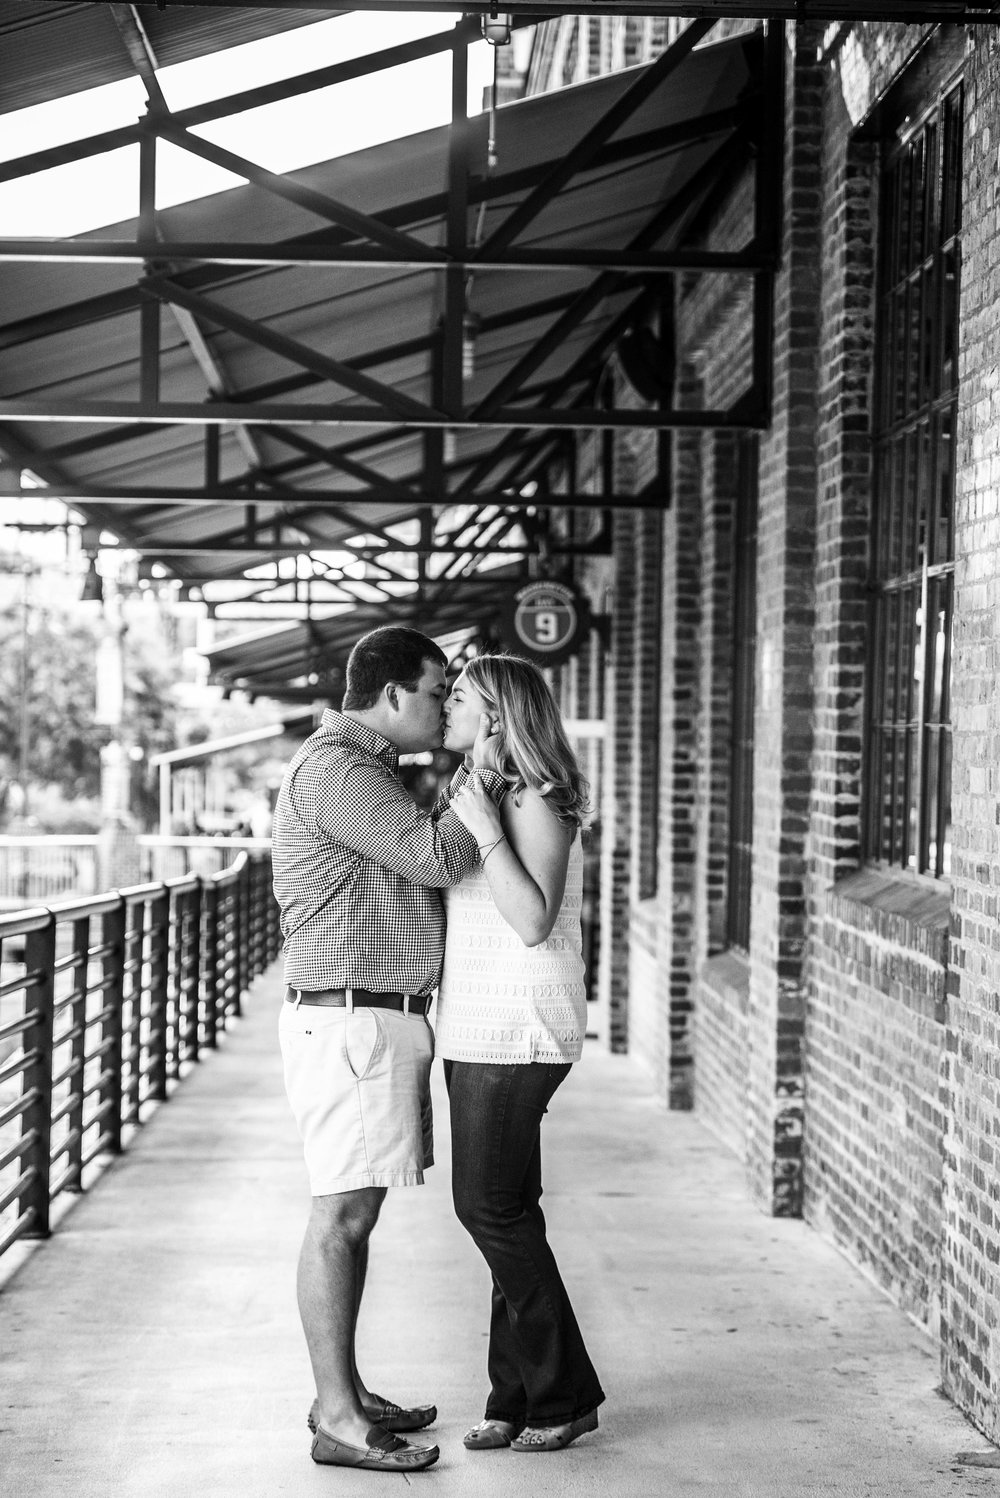 American Tabacco Campus - American Tabacco Company - Durham NC - Durham Engagement Session - NC Wedding Photographer - Engagement Session - NC Engagement - NC Weddings - Yasmin Leonard PHotography-4.jpg